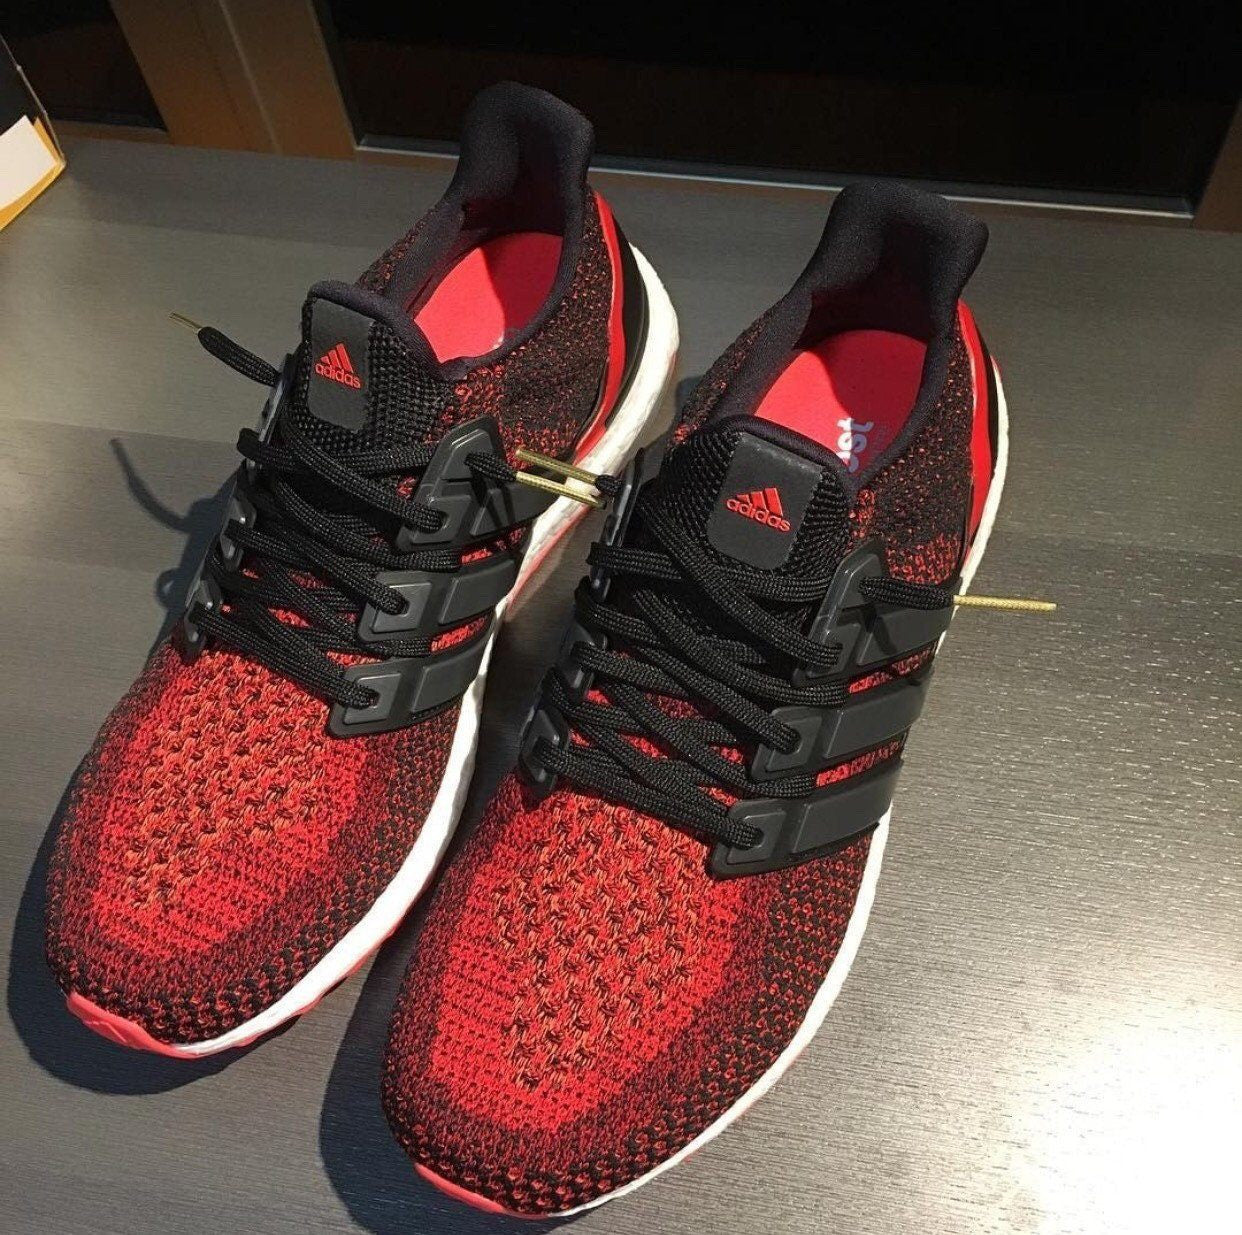 4a5c7b1c6 ... flat thin ultra boost basics flat laces og black with gold tips aglets